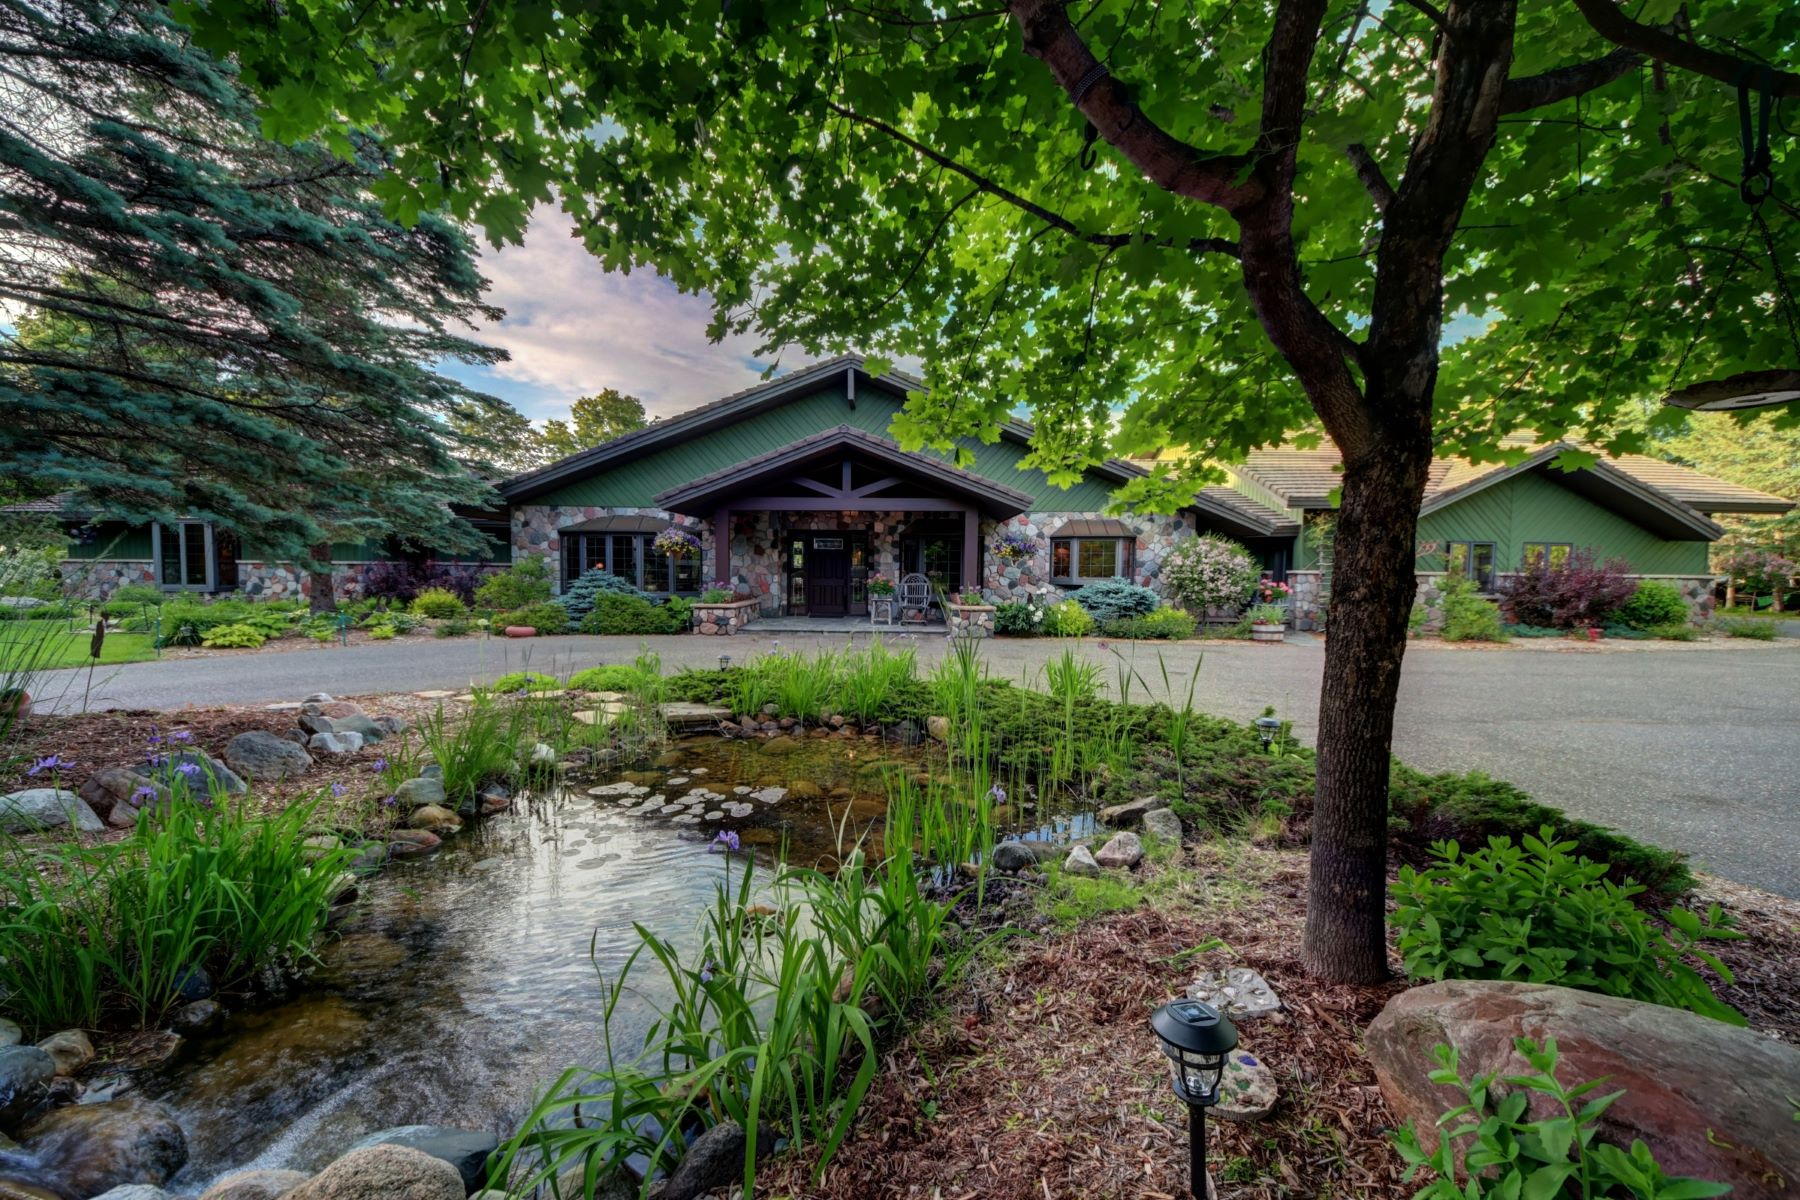 Single Family Homes for Sale at Lake Antoine waterfront property W7958 S. Lake Antoine Road Iron Mountain, Michigan 49801 United States